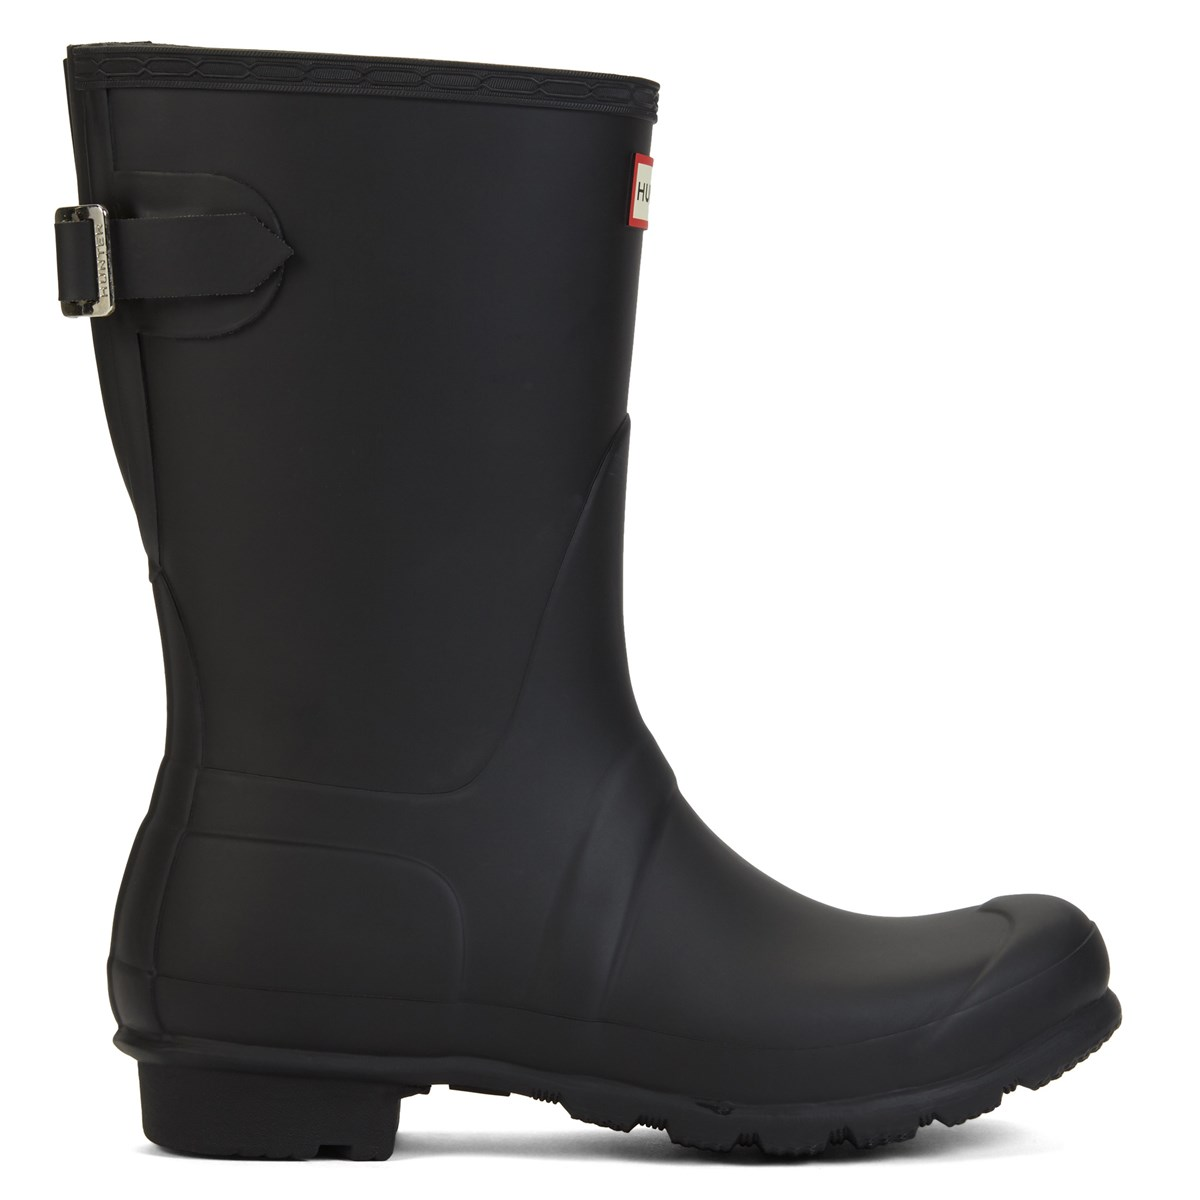 Women's Original Short Adjustable Rain Boots in Black